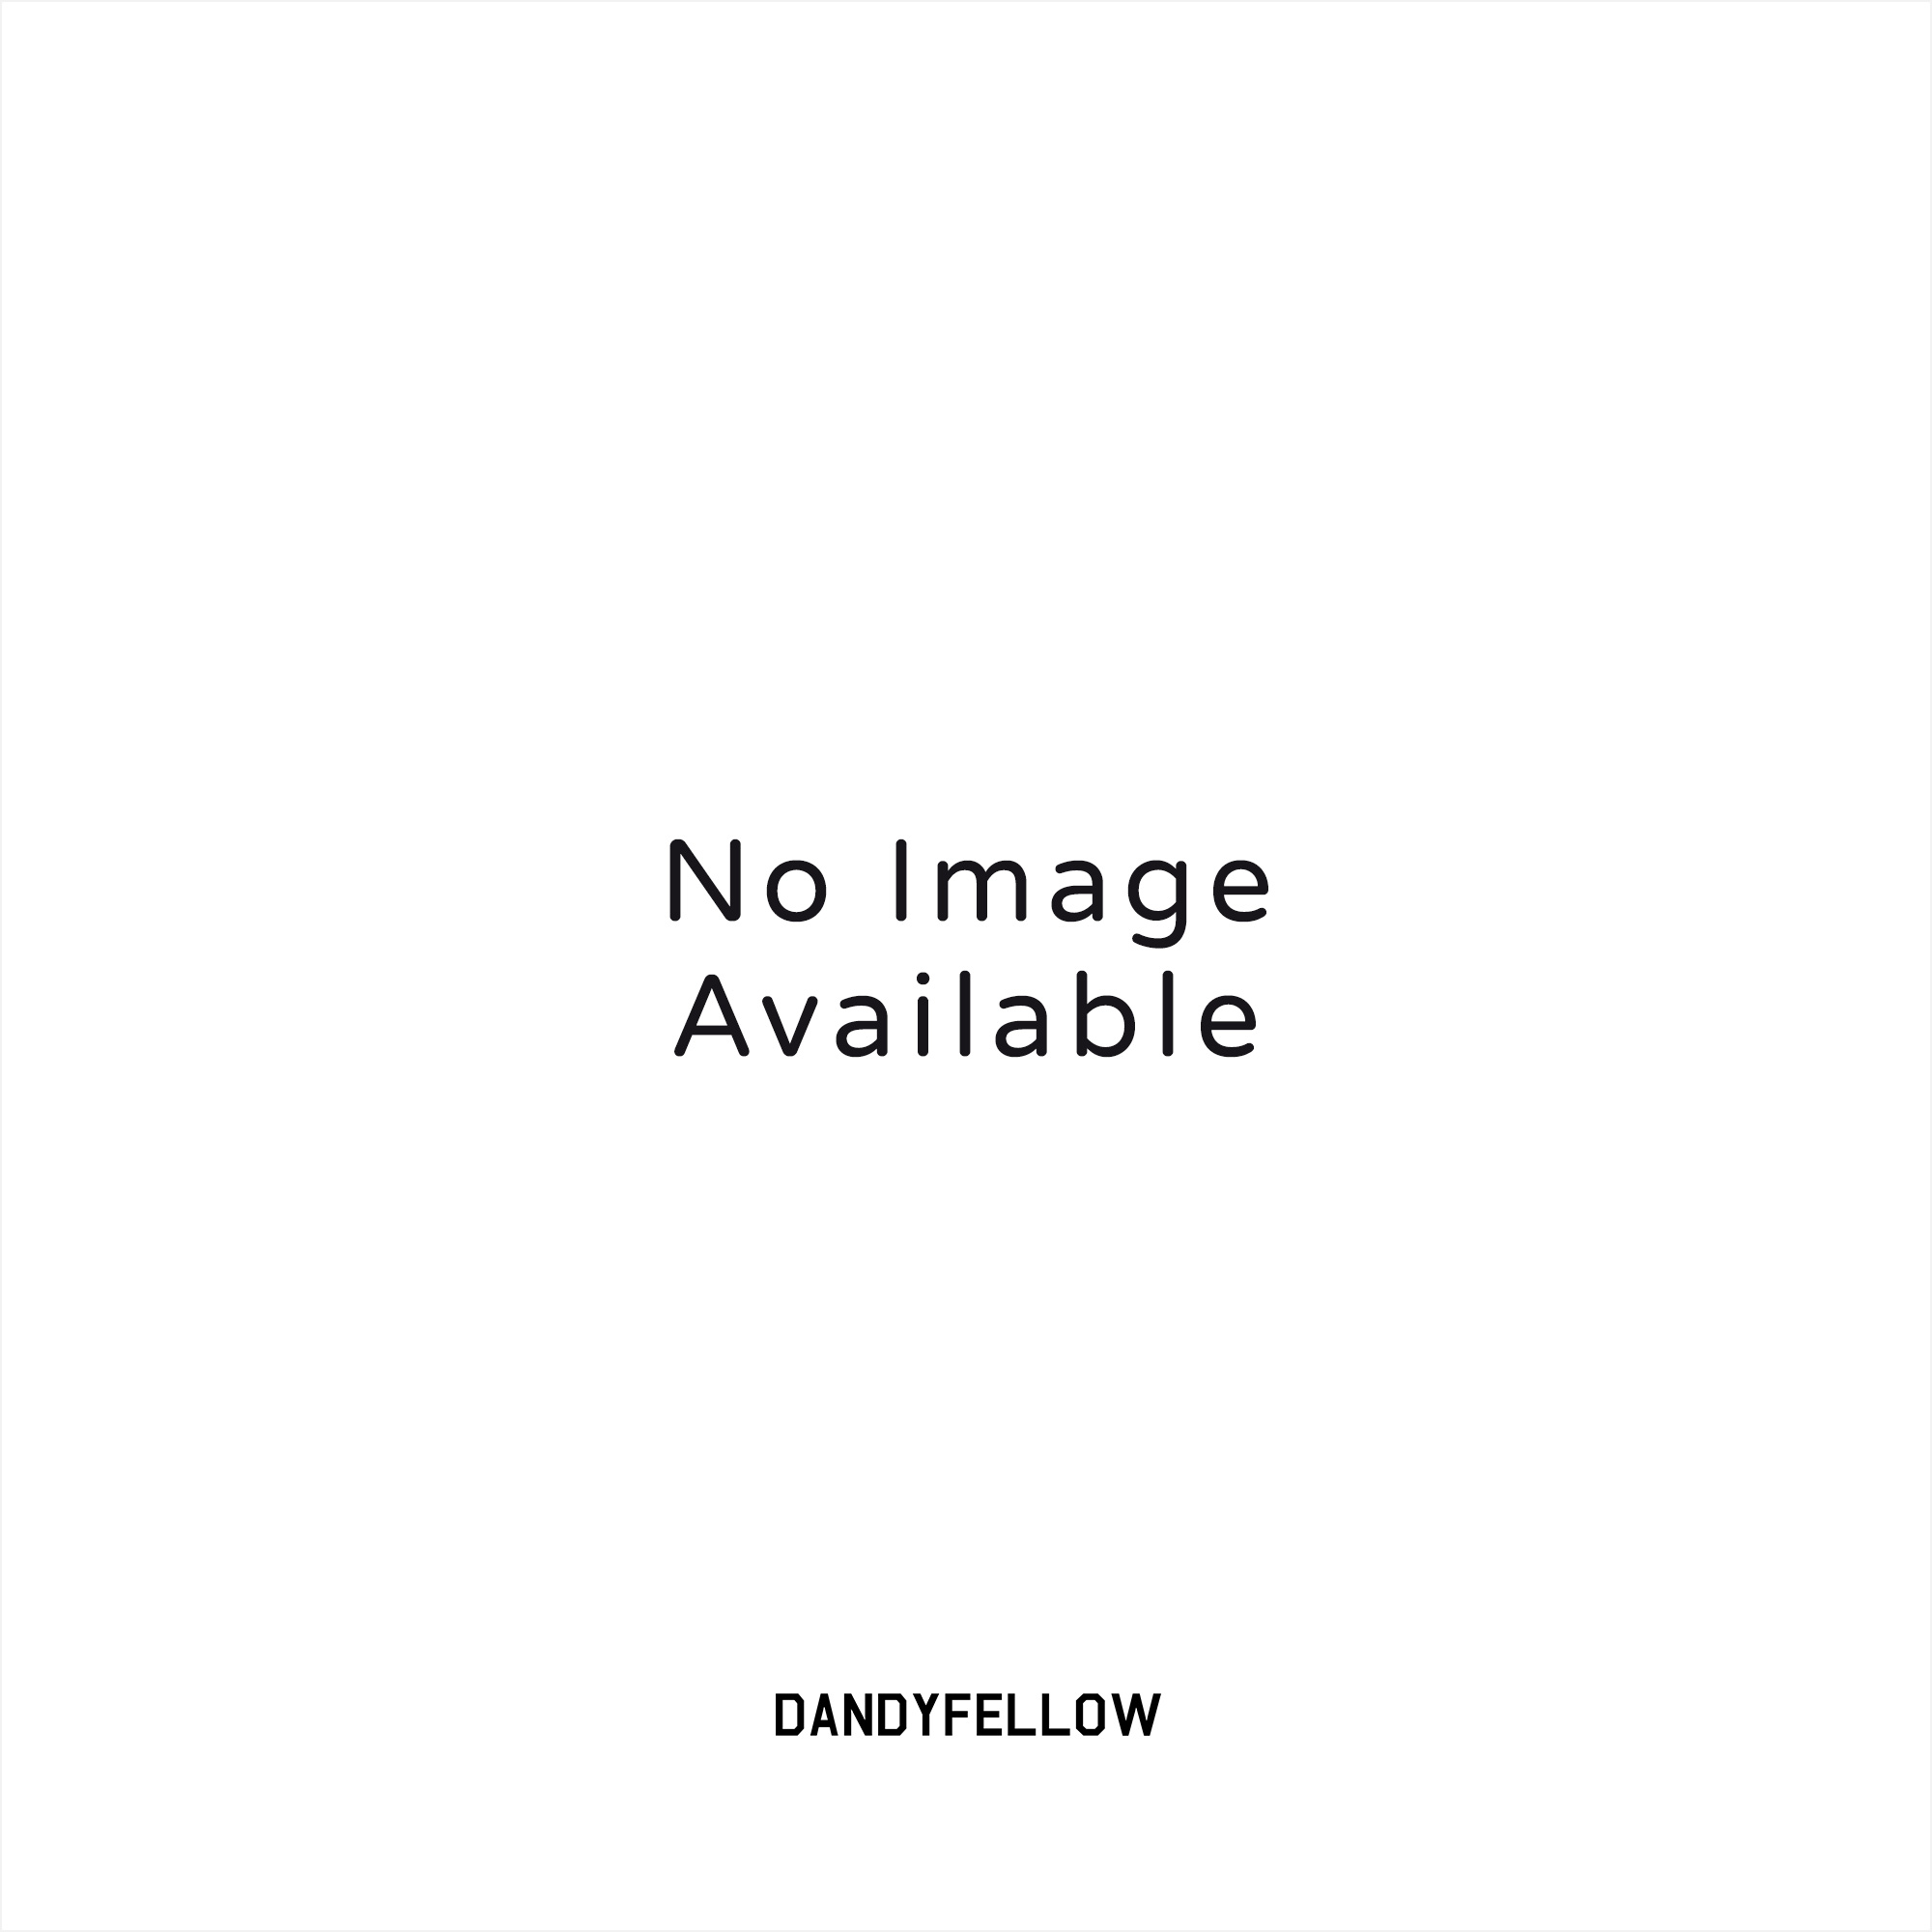 74c40f6430 Nike Womens Air Max 97 UL '17 Premium (Confetti) at Dandy Fellow